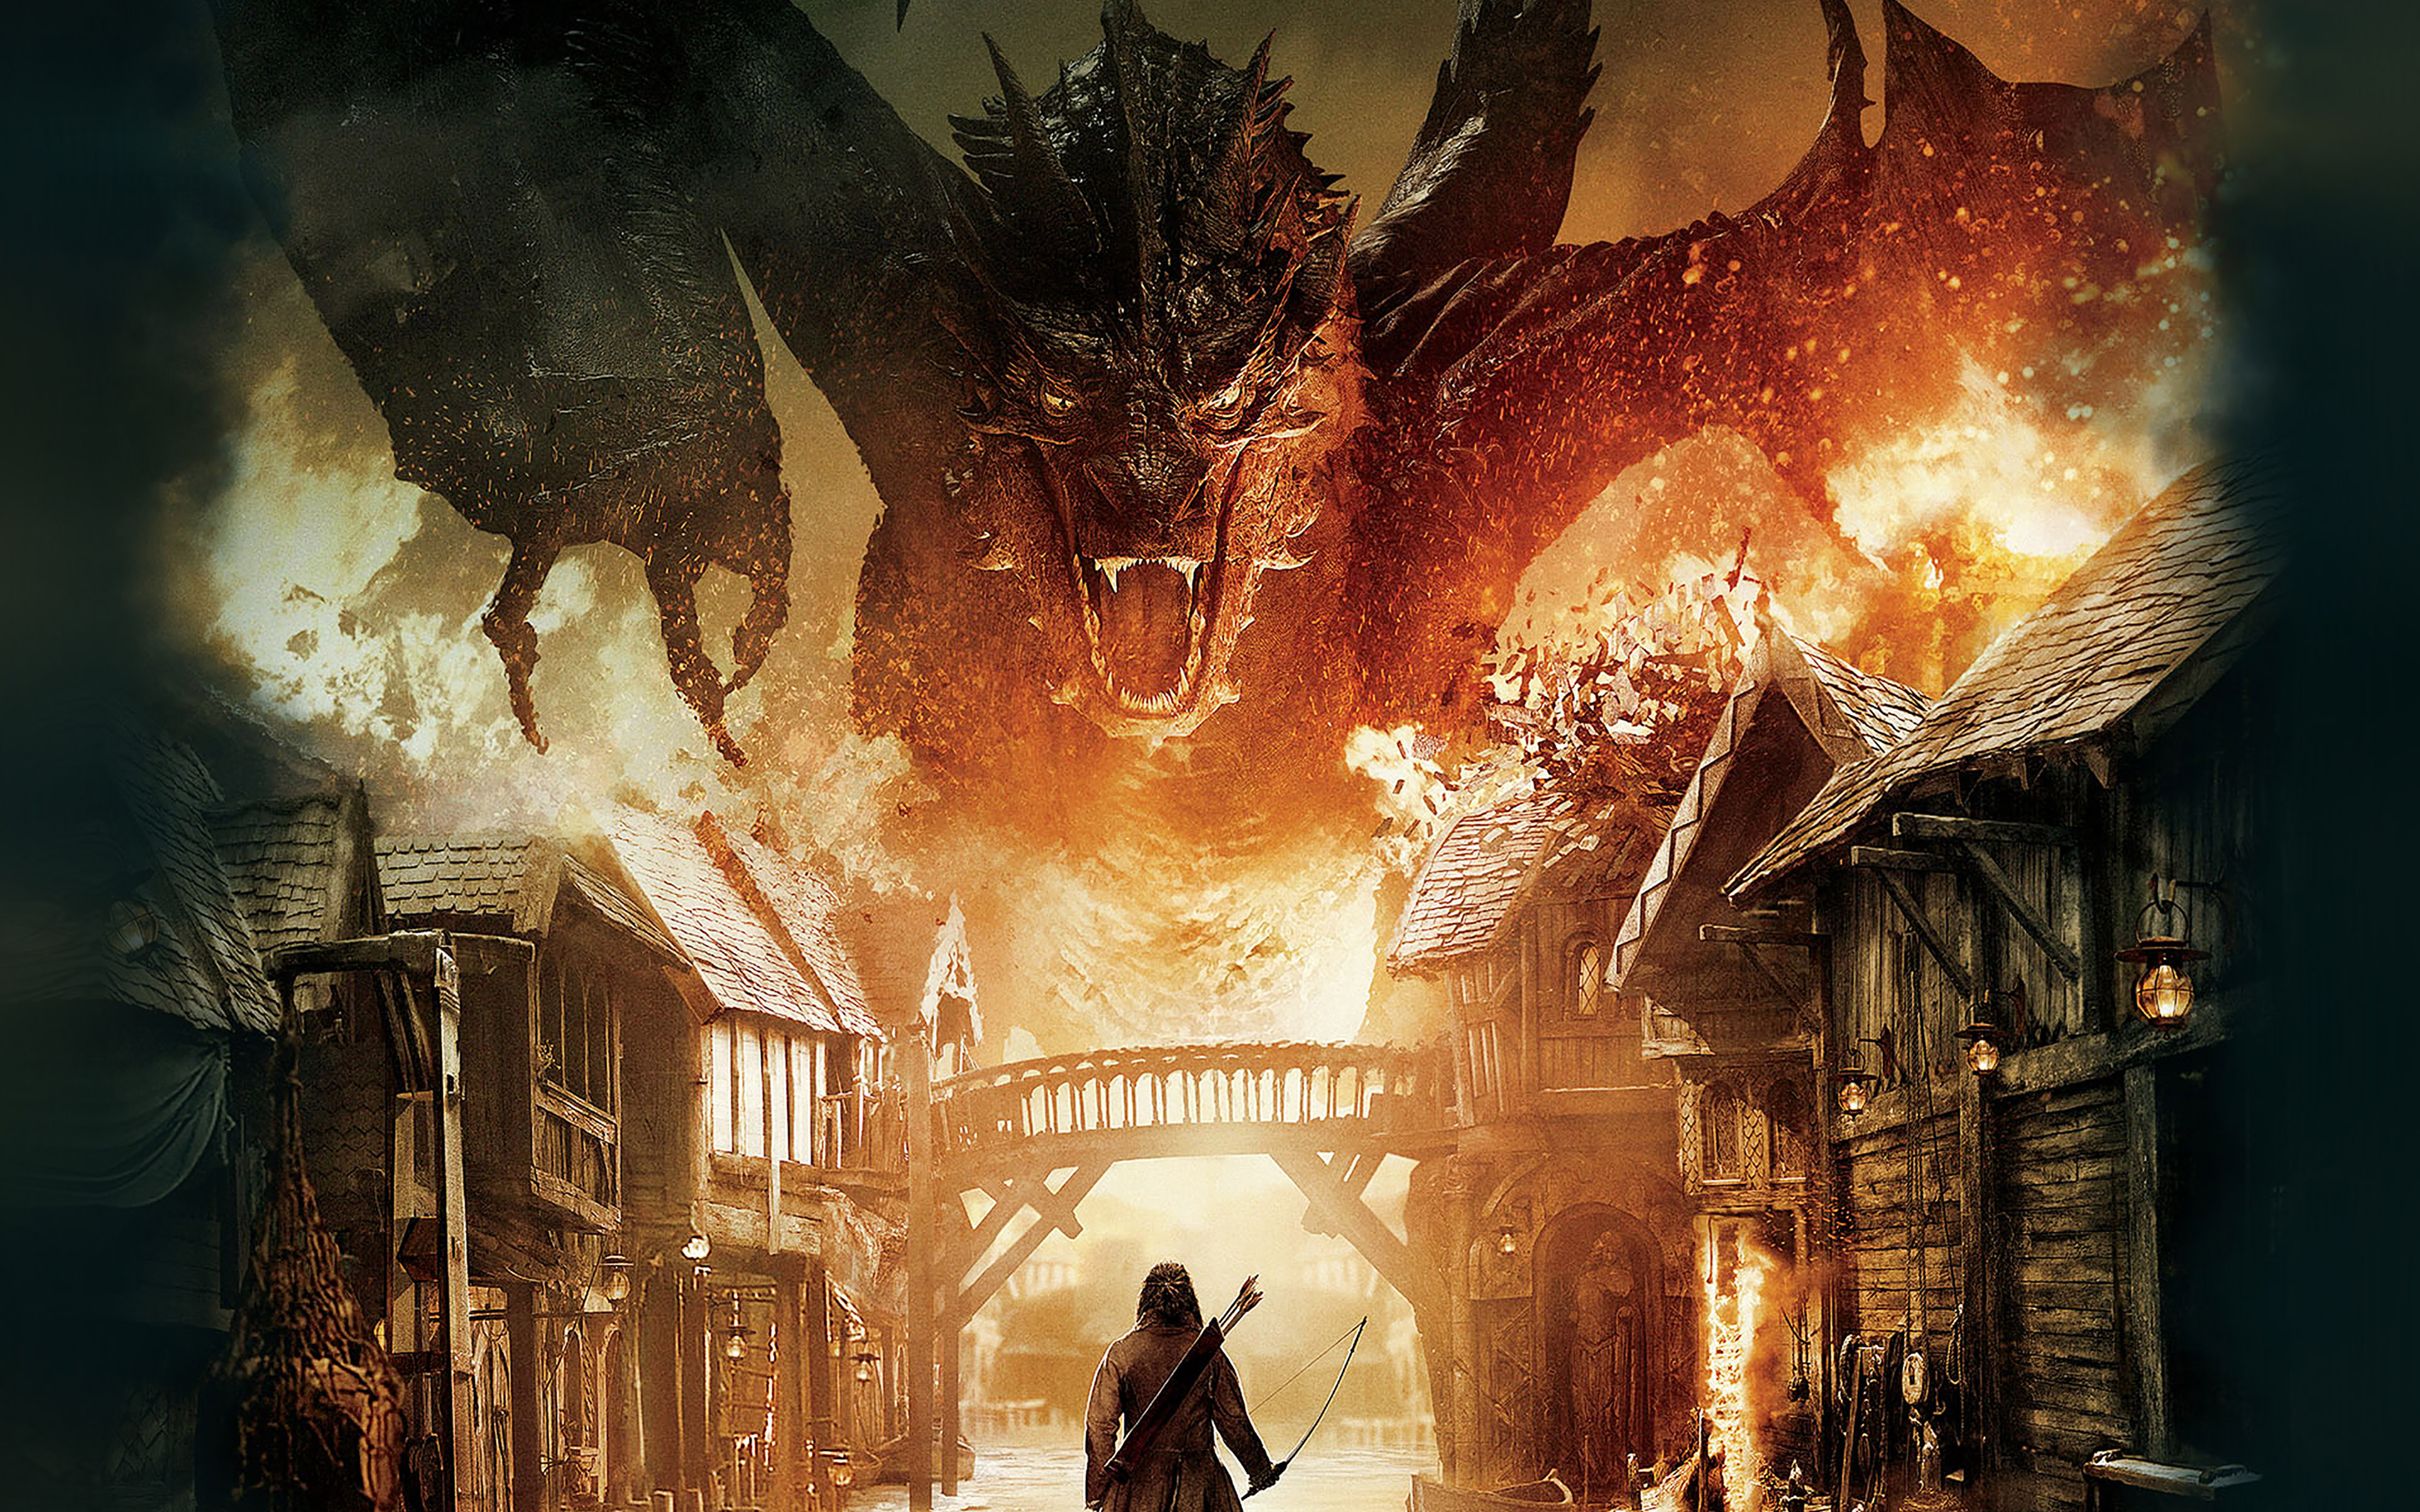 the hobbit a dragons curse essay Did dragons really exist part 1 from the hobbit to harry potter, dragons are a familiar icon today in literature, movies in detail, encounters of dragons with people one such record is the essay on dragons and ghosts, written by john of damascus.